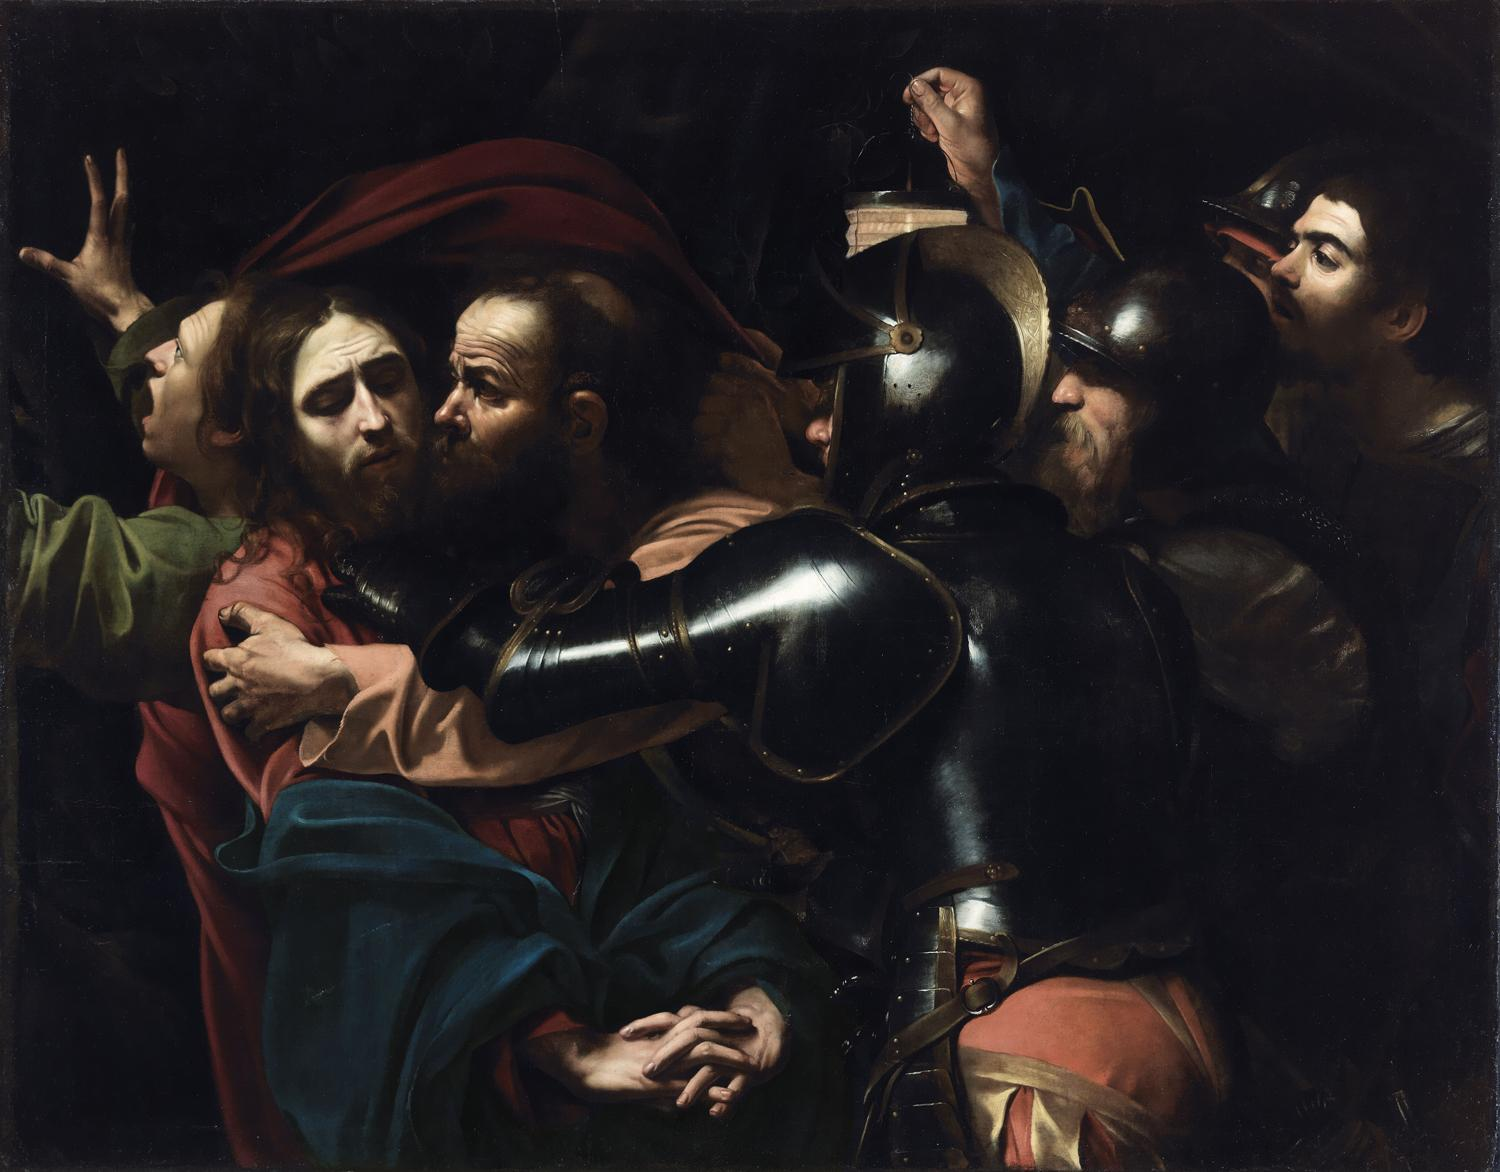 'The Taking of Christ' by Michelangelo Merisi da Caravaggio 1602